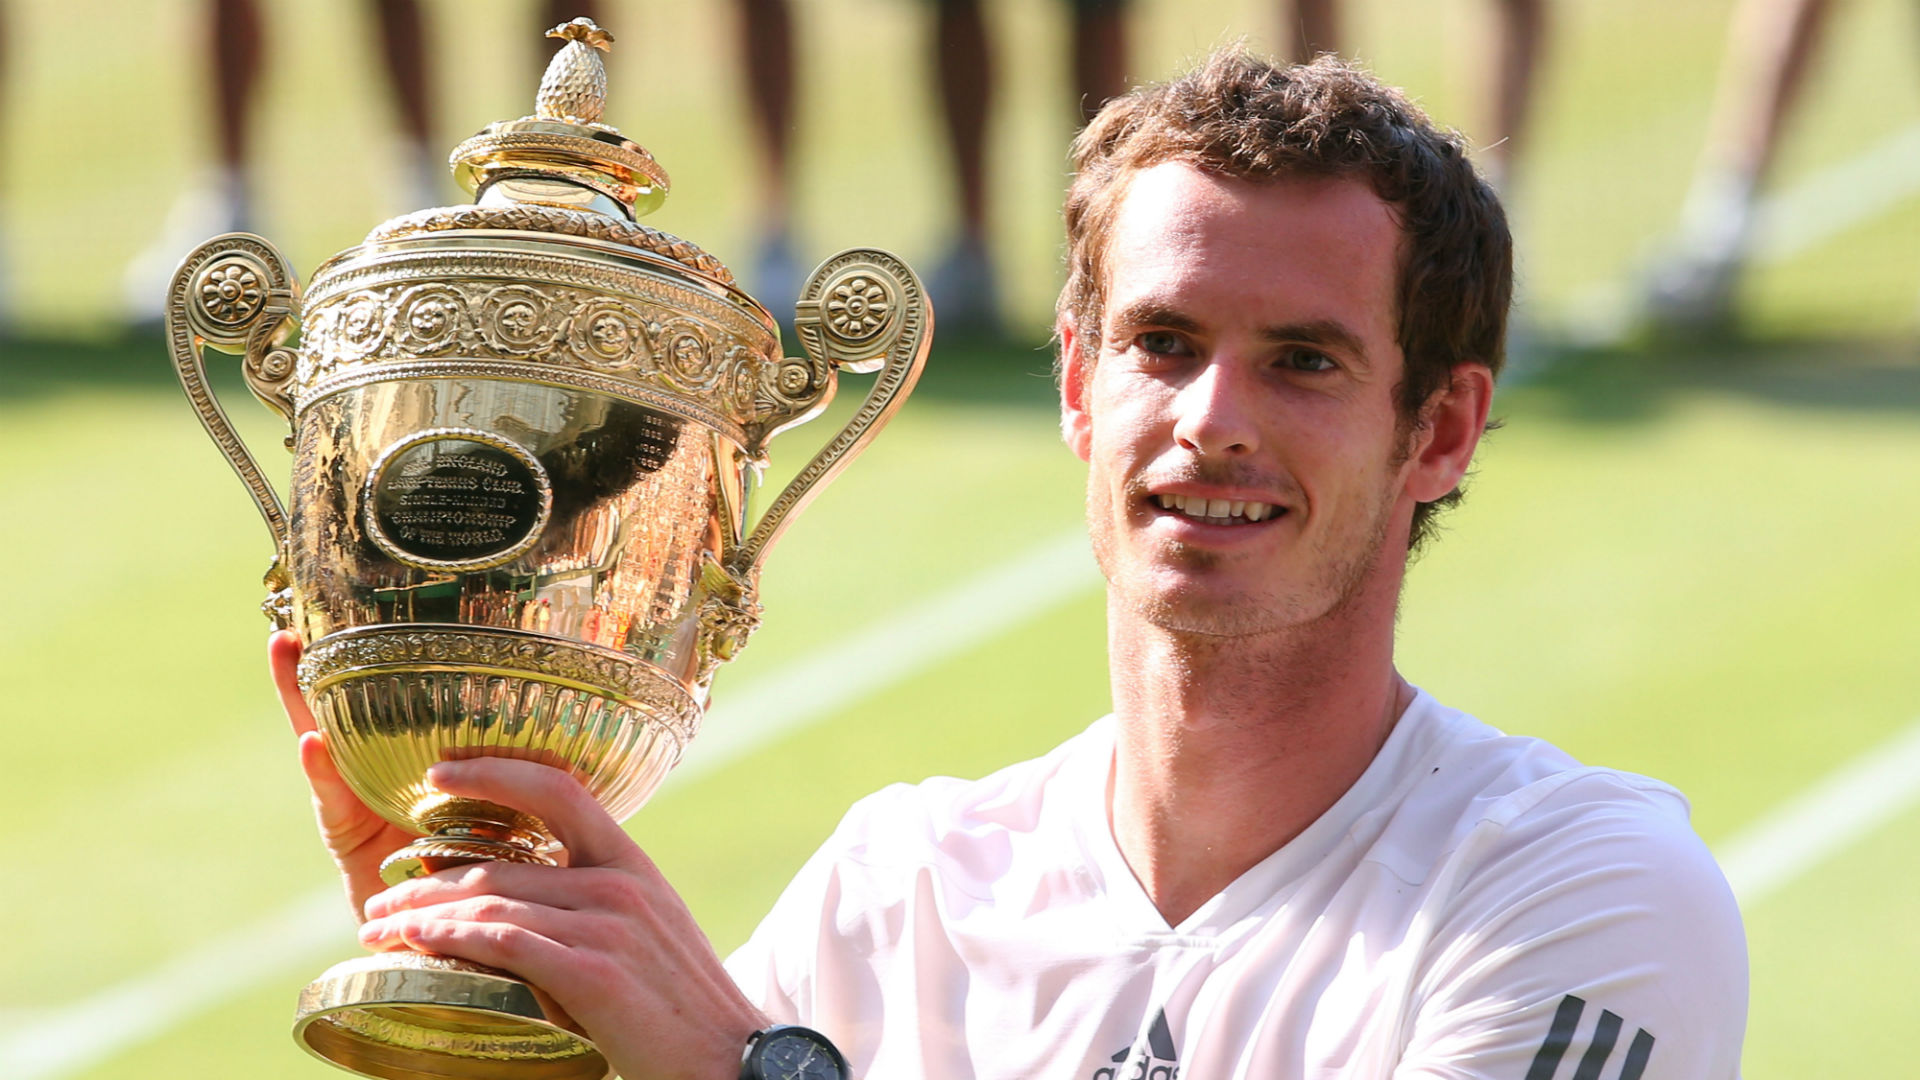 Omnisport's Christopher Devine pays tribute to Andy Murray as the former world number one approaches the end of a distinguished career.